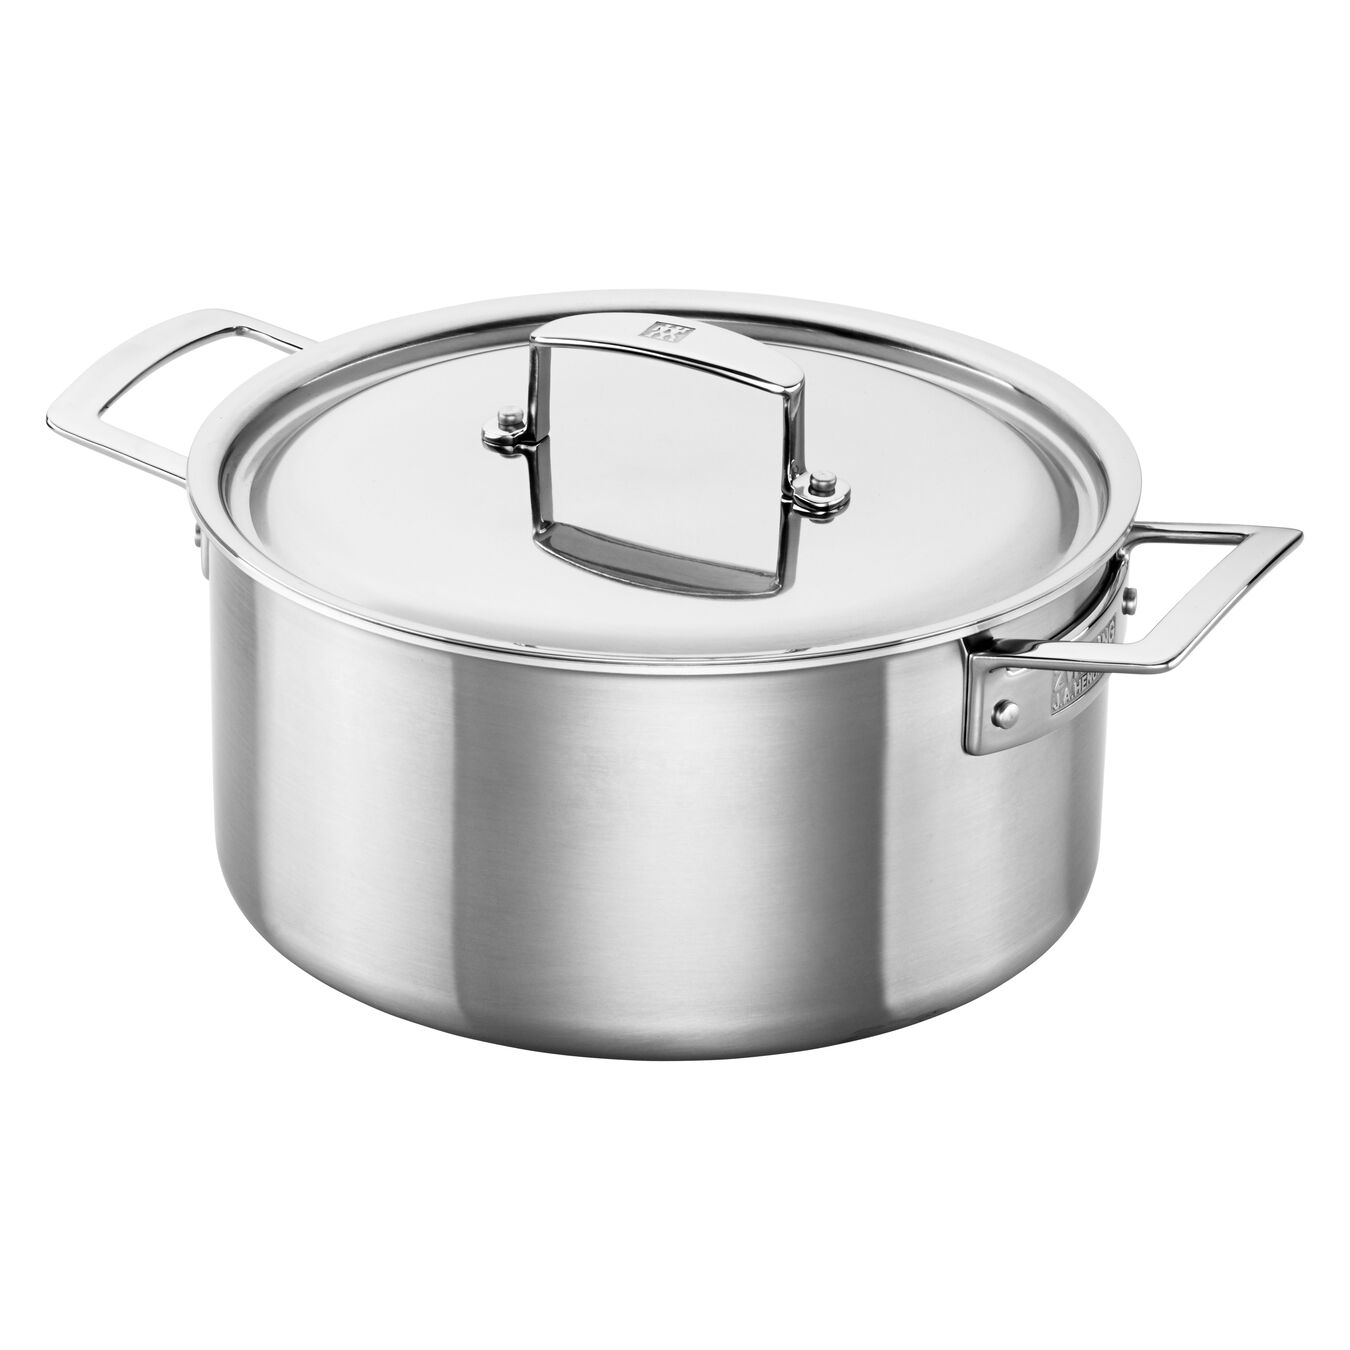 5.2 l 18/10 Stainless Steel Stock pot,,large 1